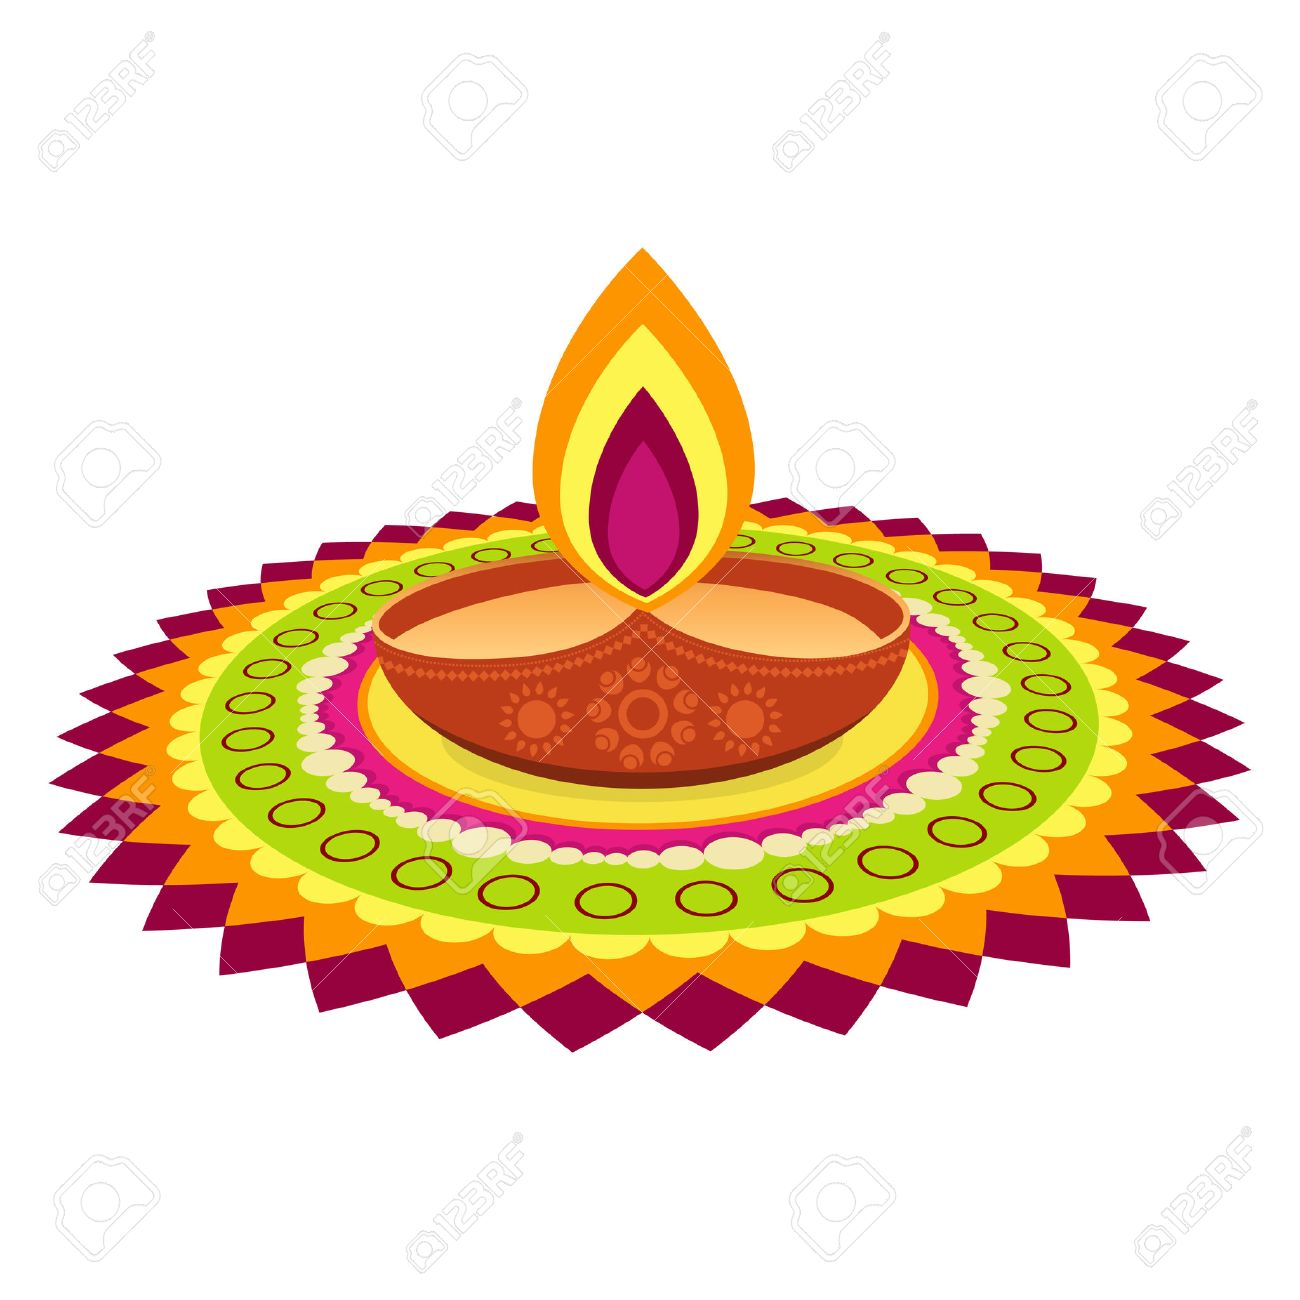 30   Cool Diwali Lamps for Diwali Lamp Designs  557ylc